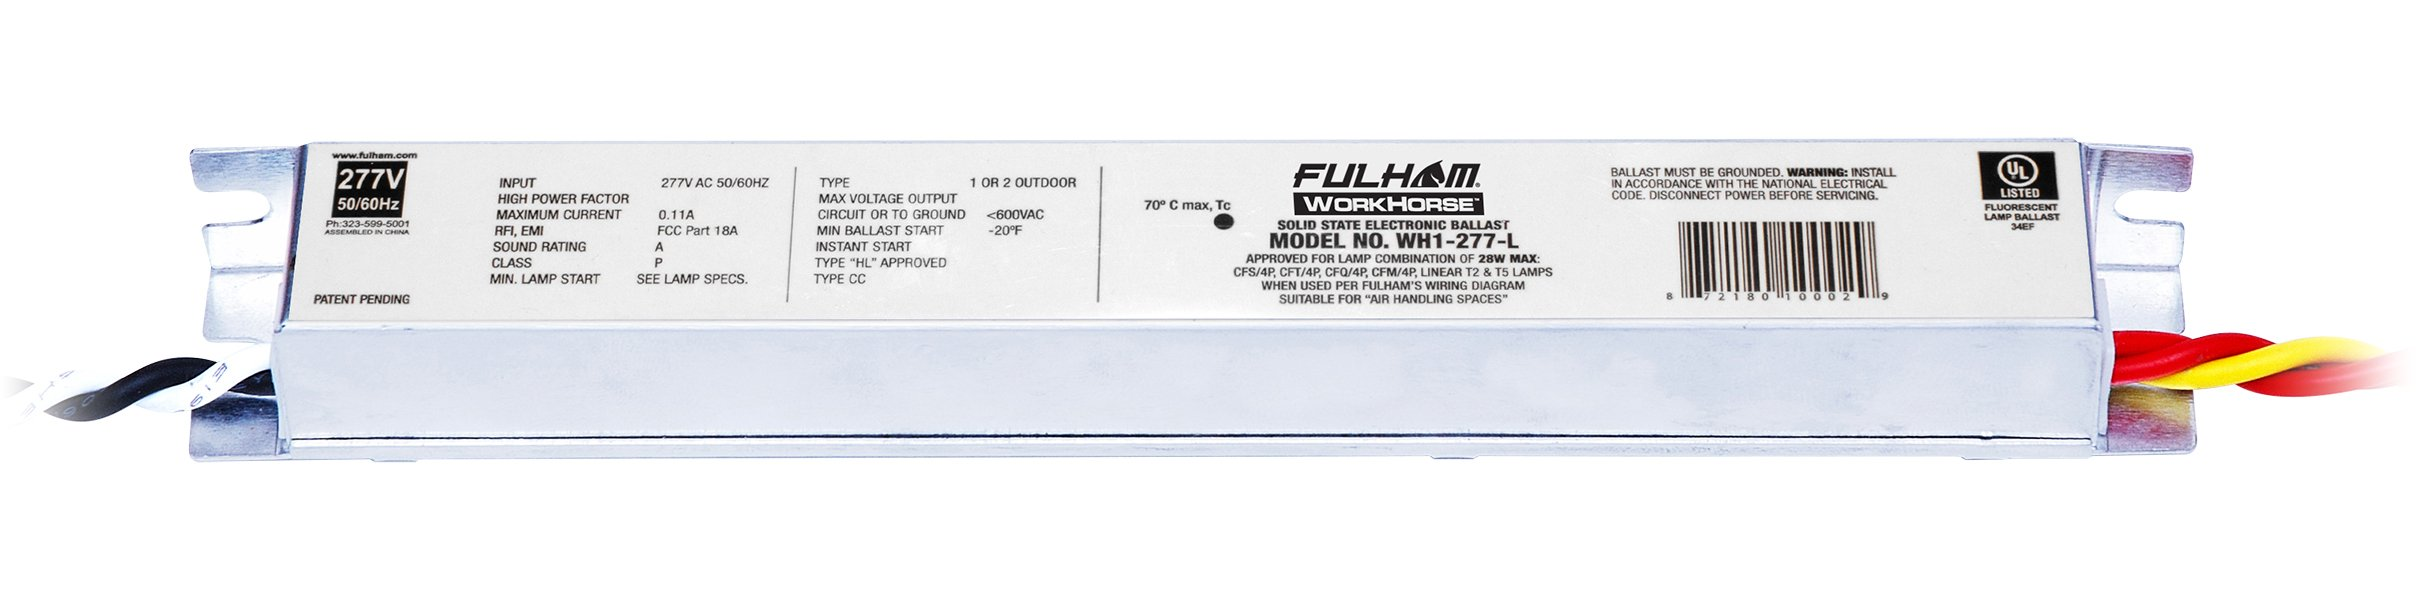 Fulham WH1-277-L Workhorse Adaptable Ballast